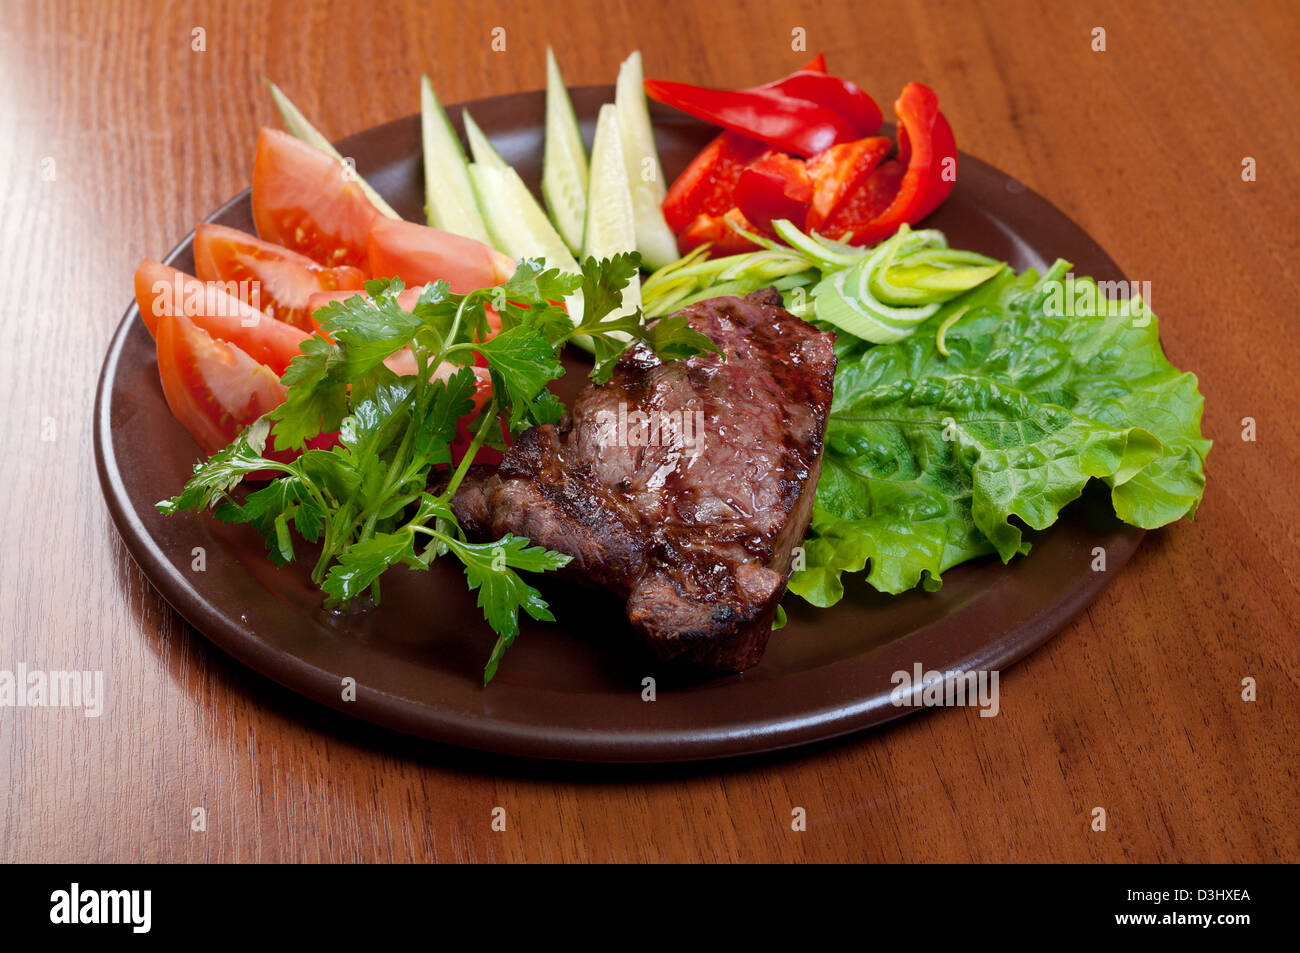 Grilled beef on white plate with vegetable - Stock Image